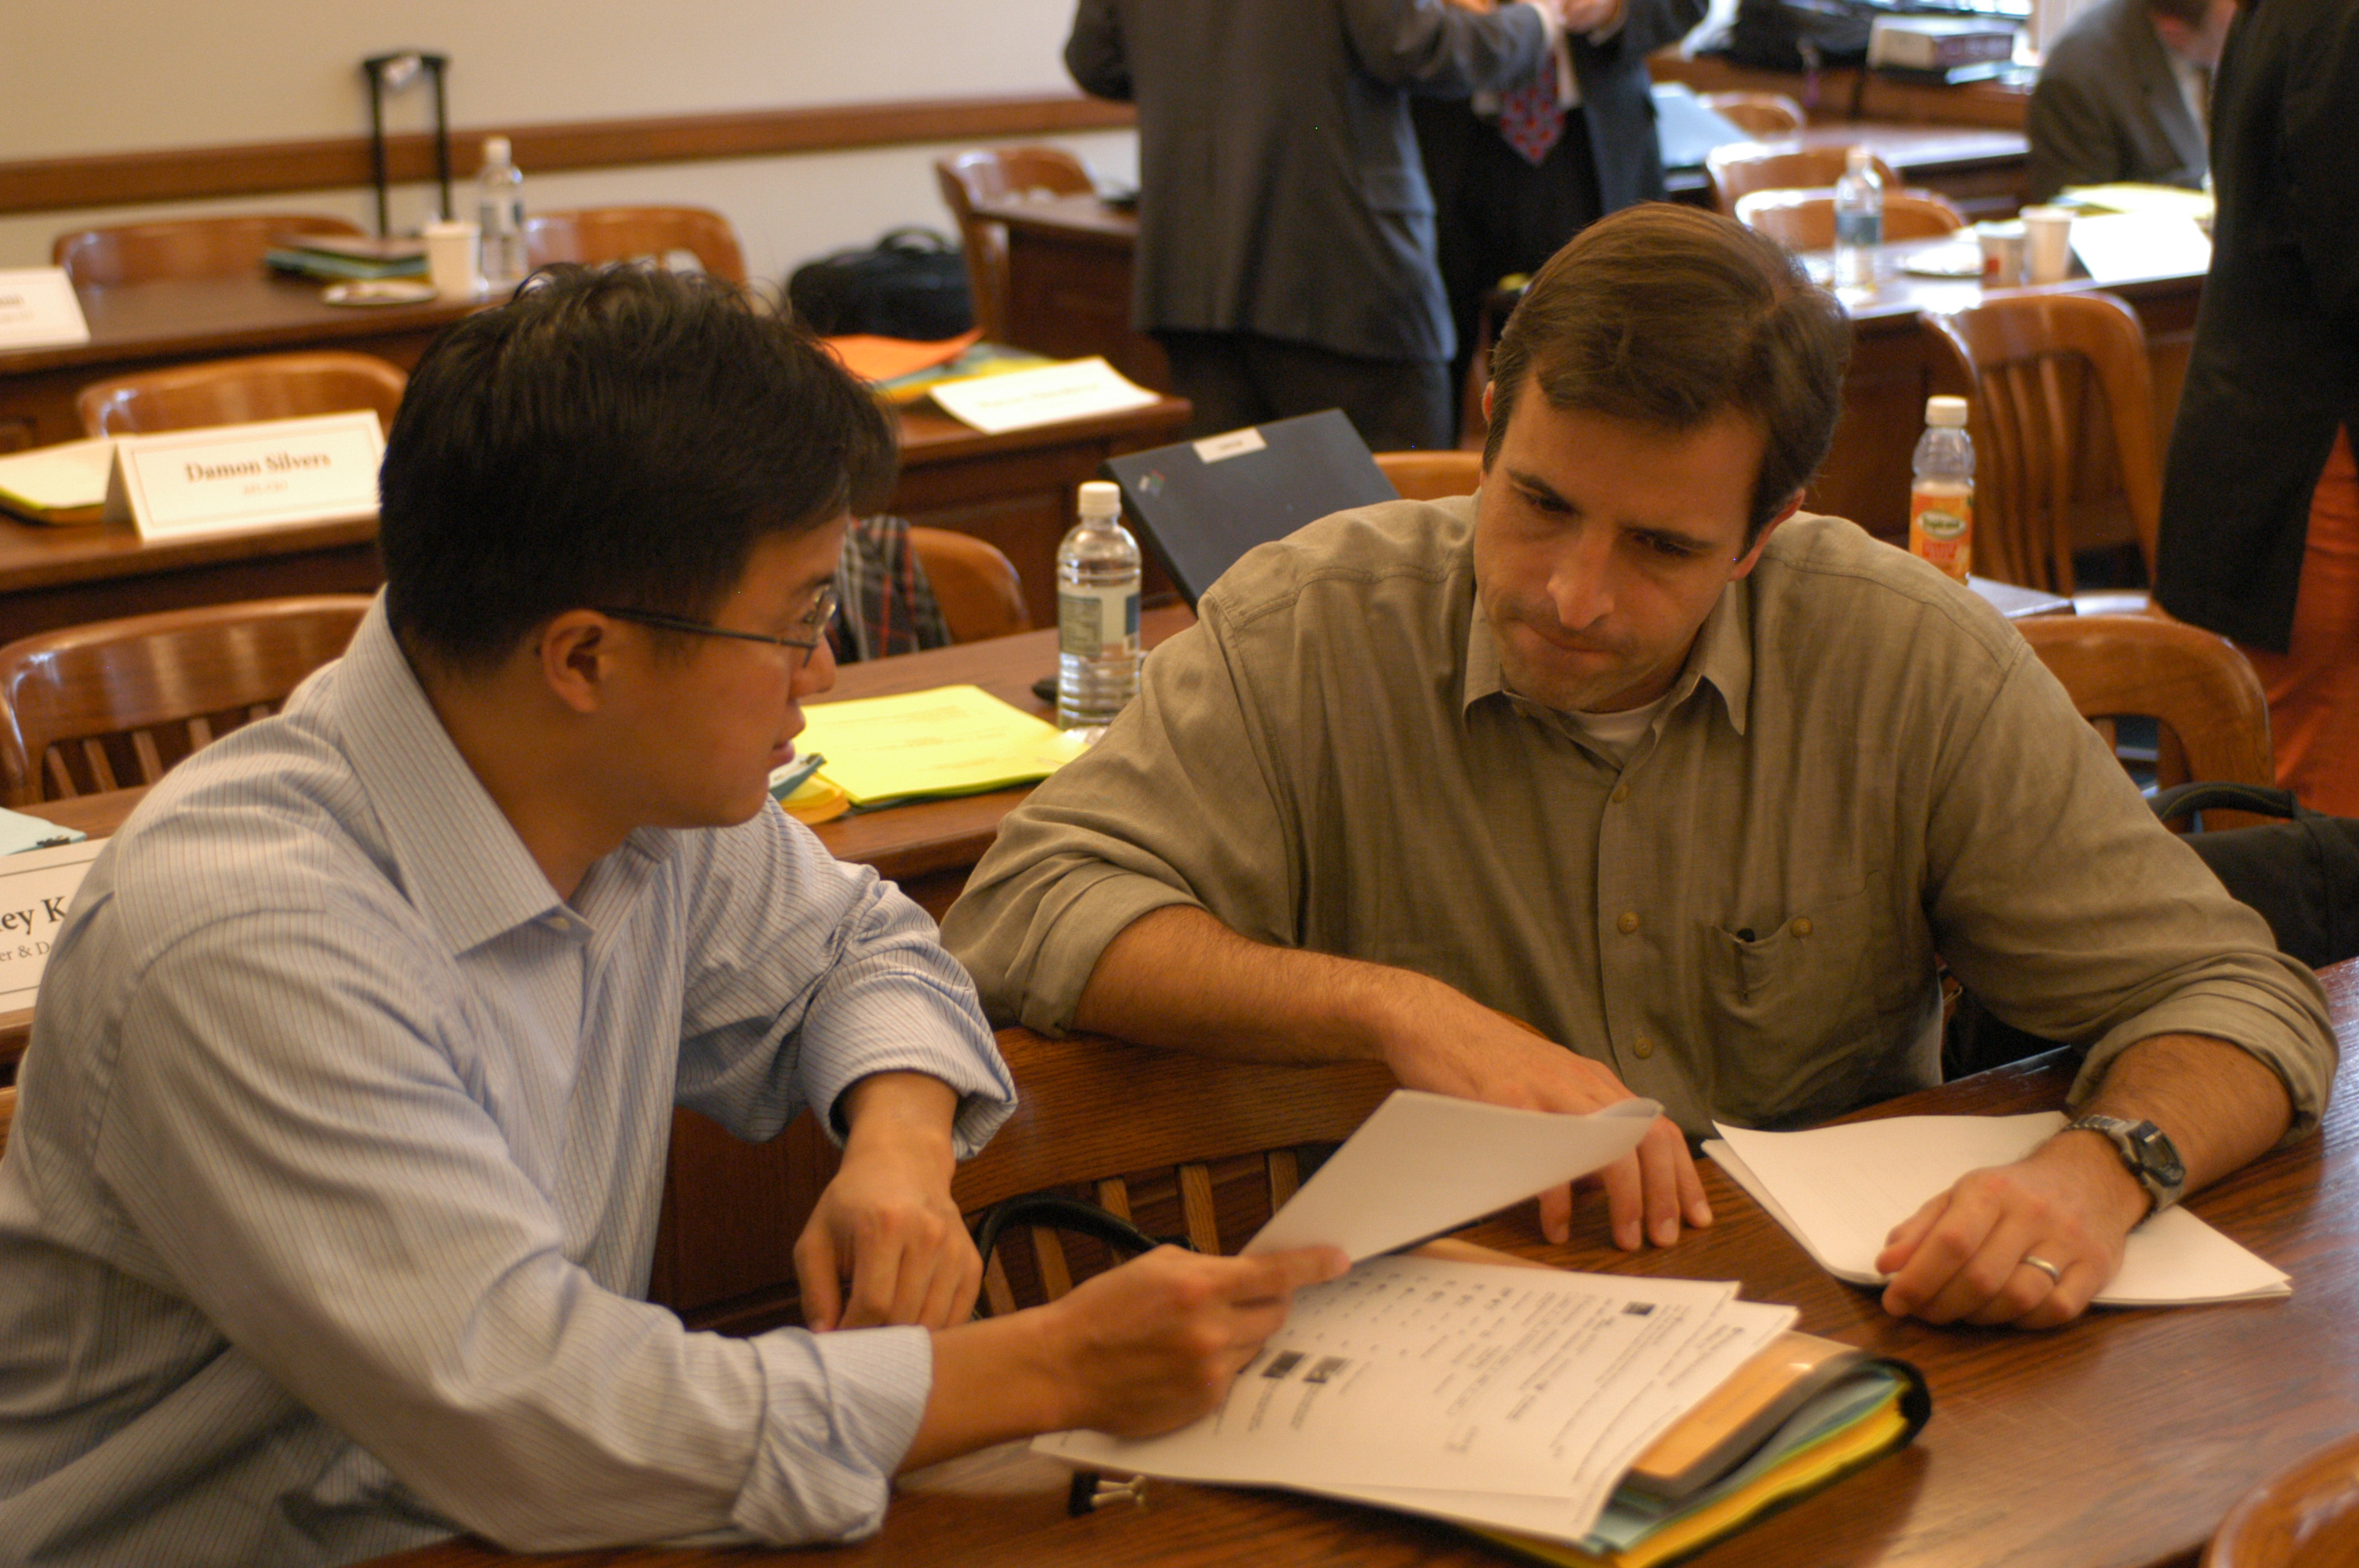 UVA Law Profs. Albert Choi '01 and George Triantis